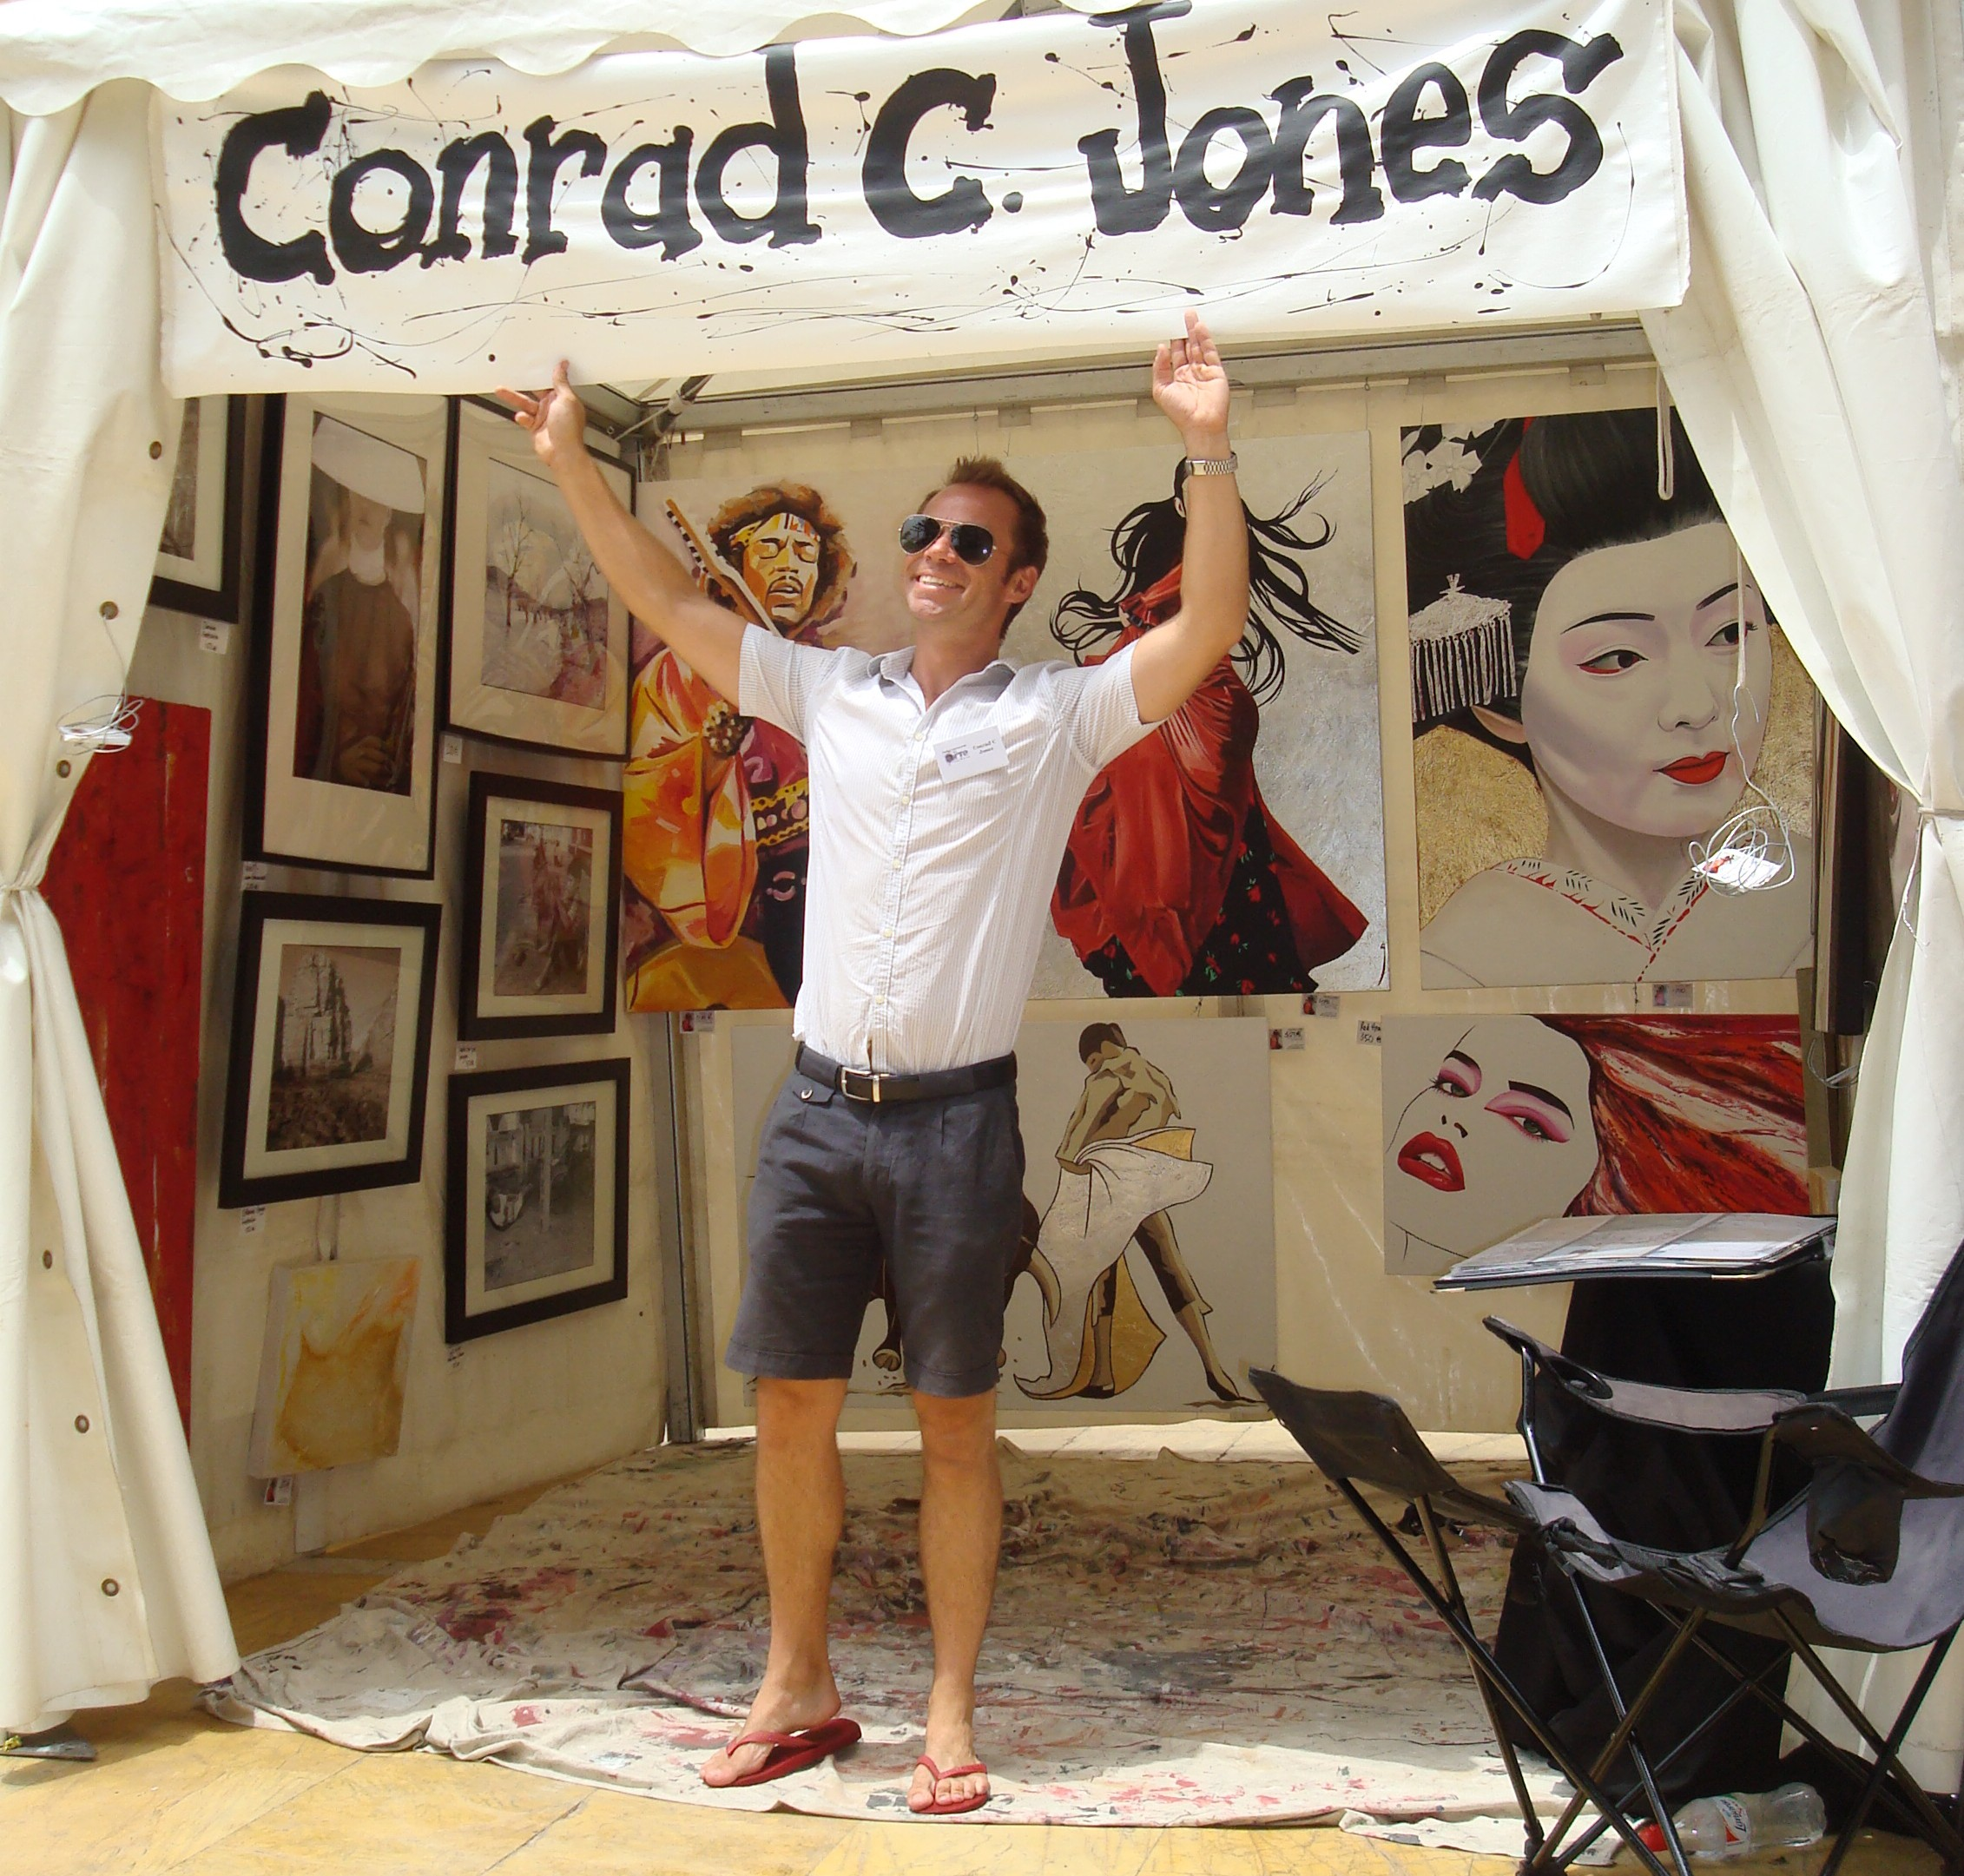 Conrad C Jones Marbella Art Fair June 2009 www.andrewforbes.com (6)